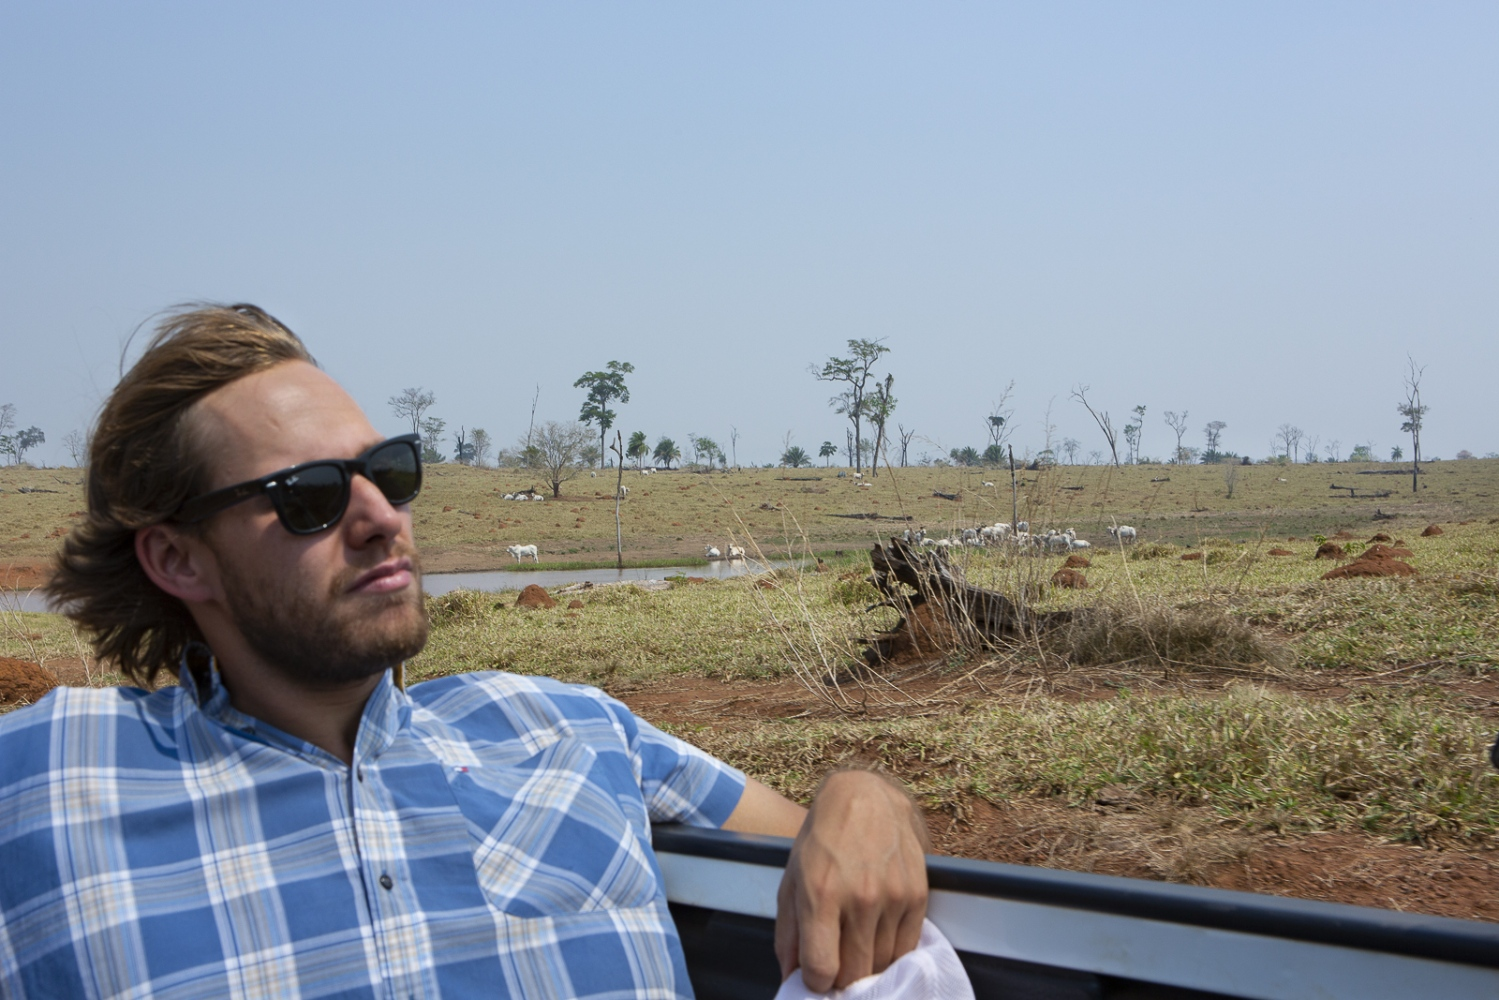 Rodrigo Rodrigues da Cunha, 27 years, the young financial manager of his familiar agro-business company, visit a 38 thousand acres farm in Mato Grosso newly acquired by the group. The Rodrigues da Cunha Agropecuaria owns 11 farms in Brazil, spreads between Mato Grosso, Para, Tocantins, among others. Mato Grosso, Brazil, 2015